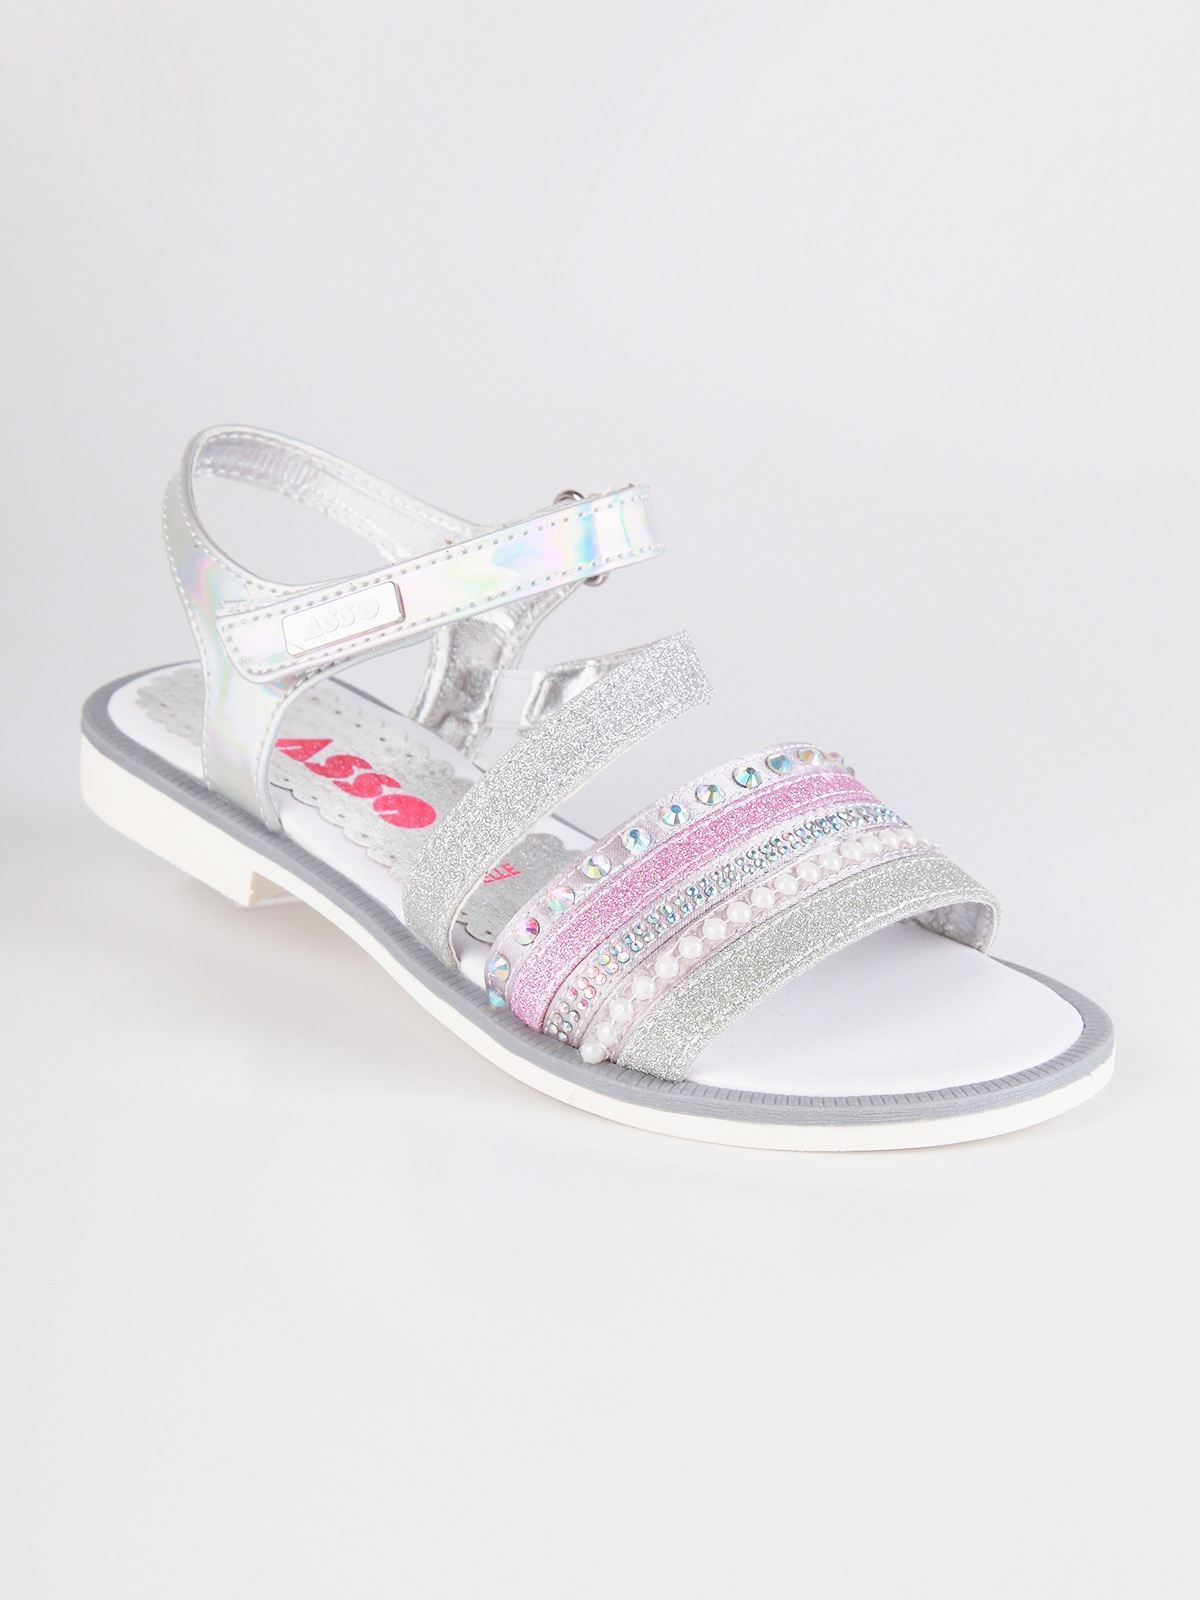 ACE Silver Sandals With Rhinestone And Glitter